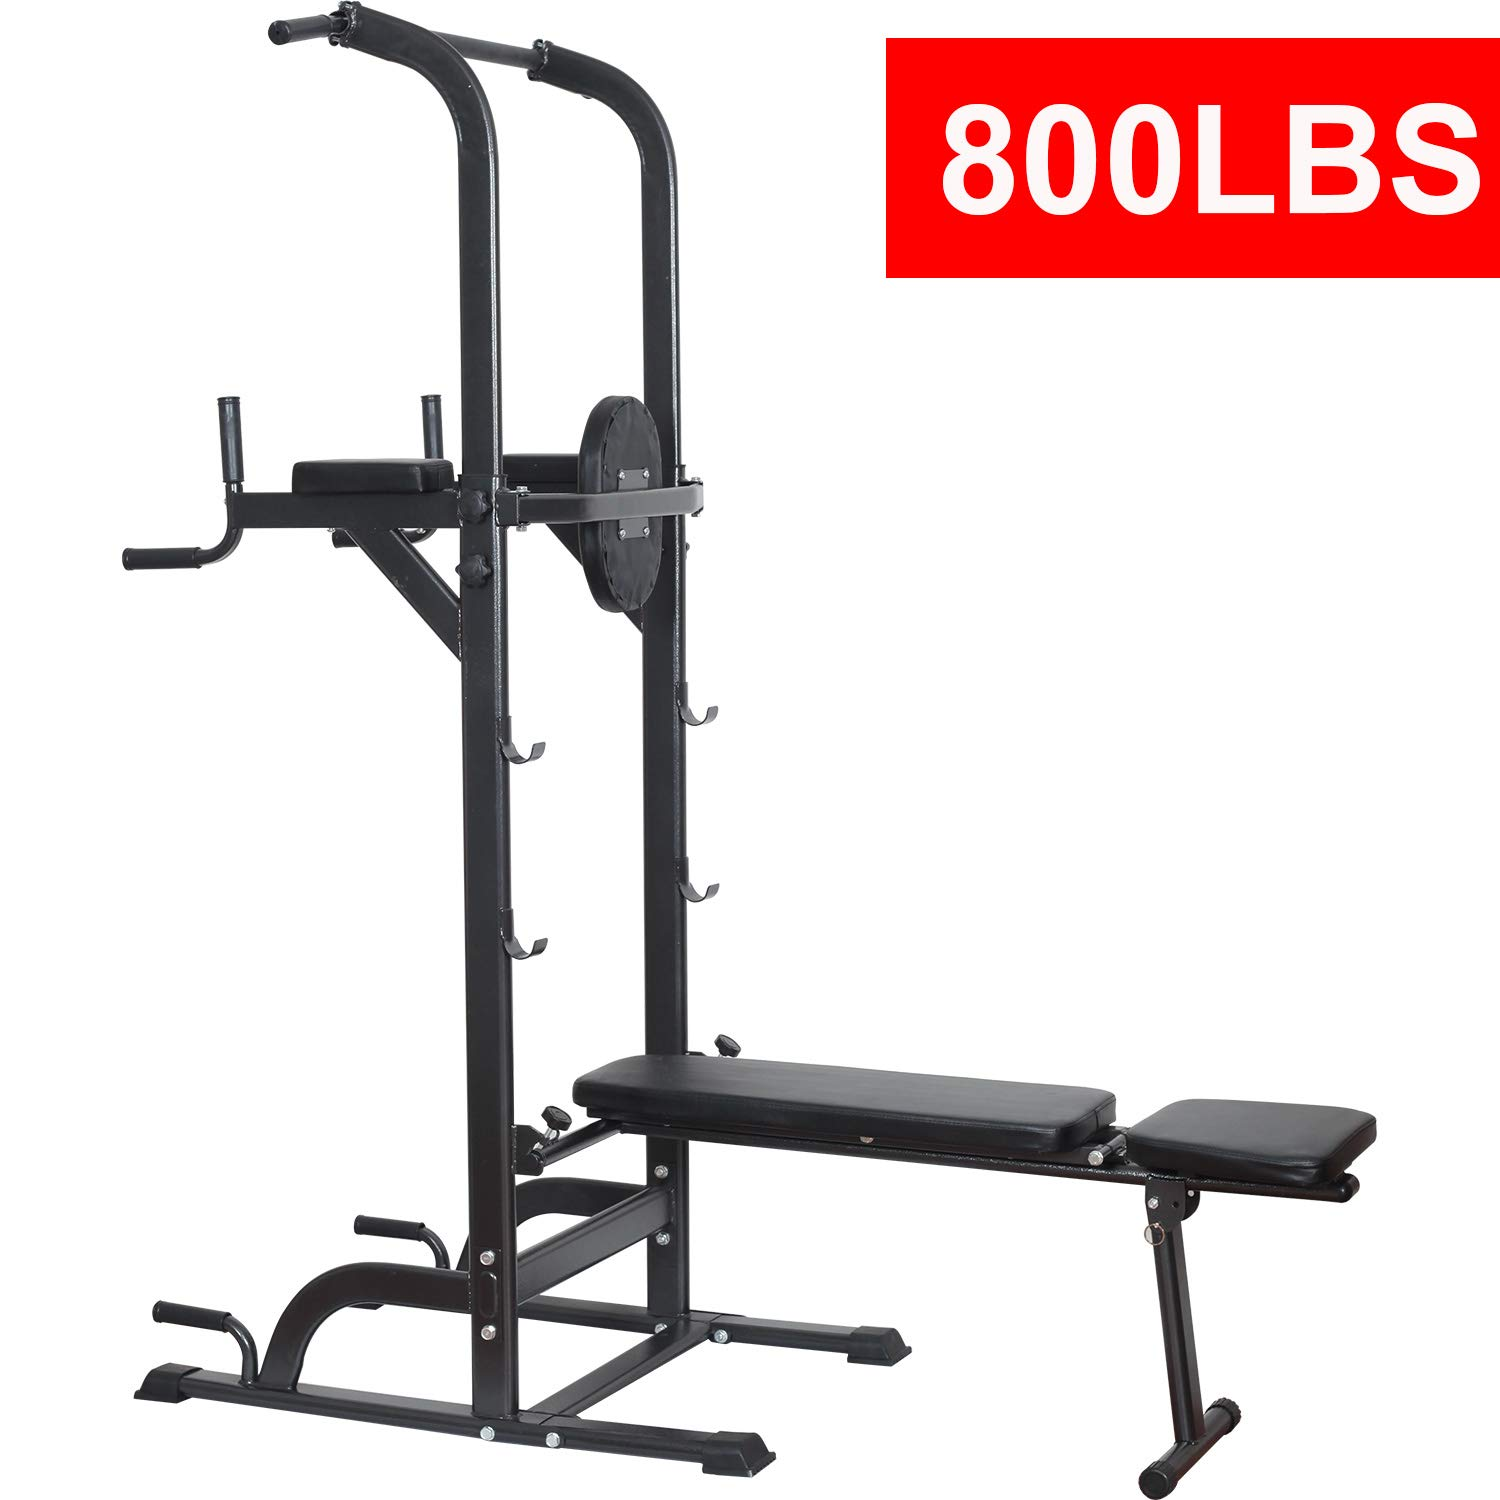 17677785384 Reliancer Power Tower Dip Station High Capacity 800lbs w Weight Sit Up  Bench Adjustable Height Heavy Duty Steel Multi-Function Fitness Pull Up  Chin Up Tower ...